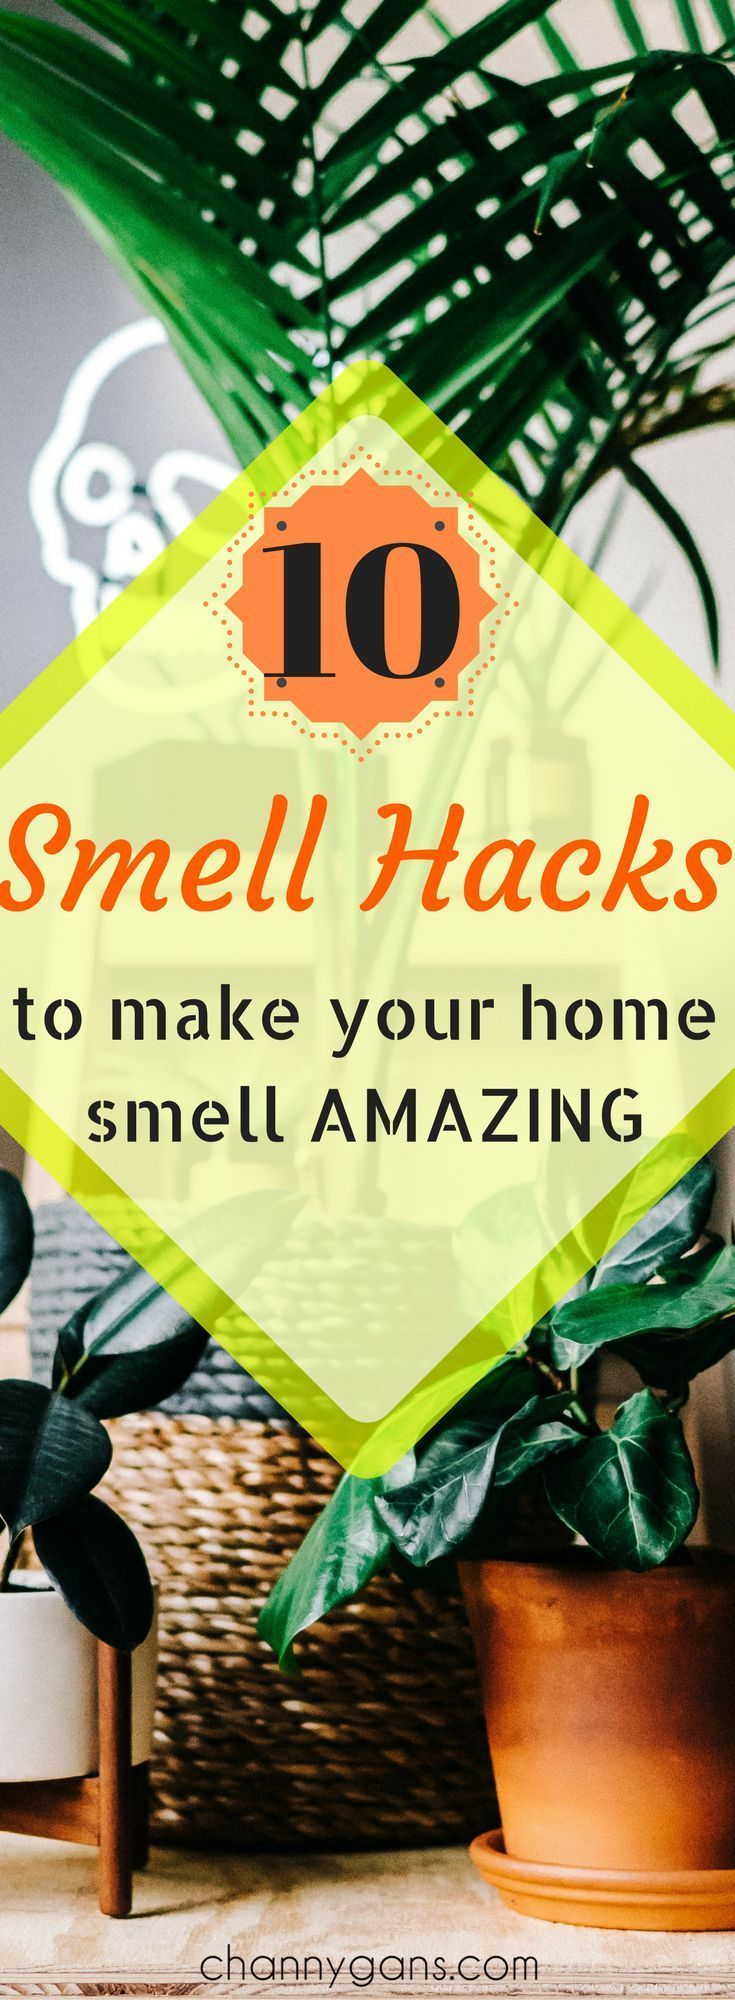 These smell hacks are awesome! My home has never smelled better!